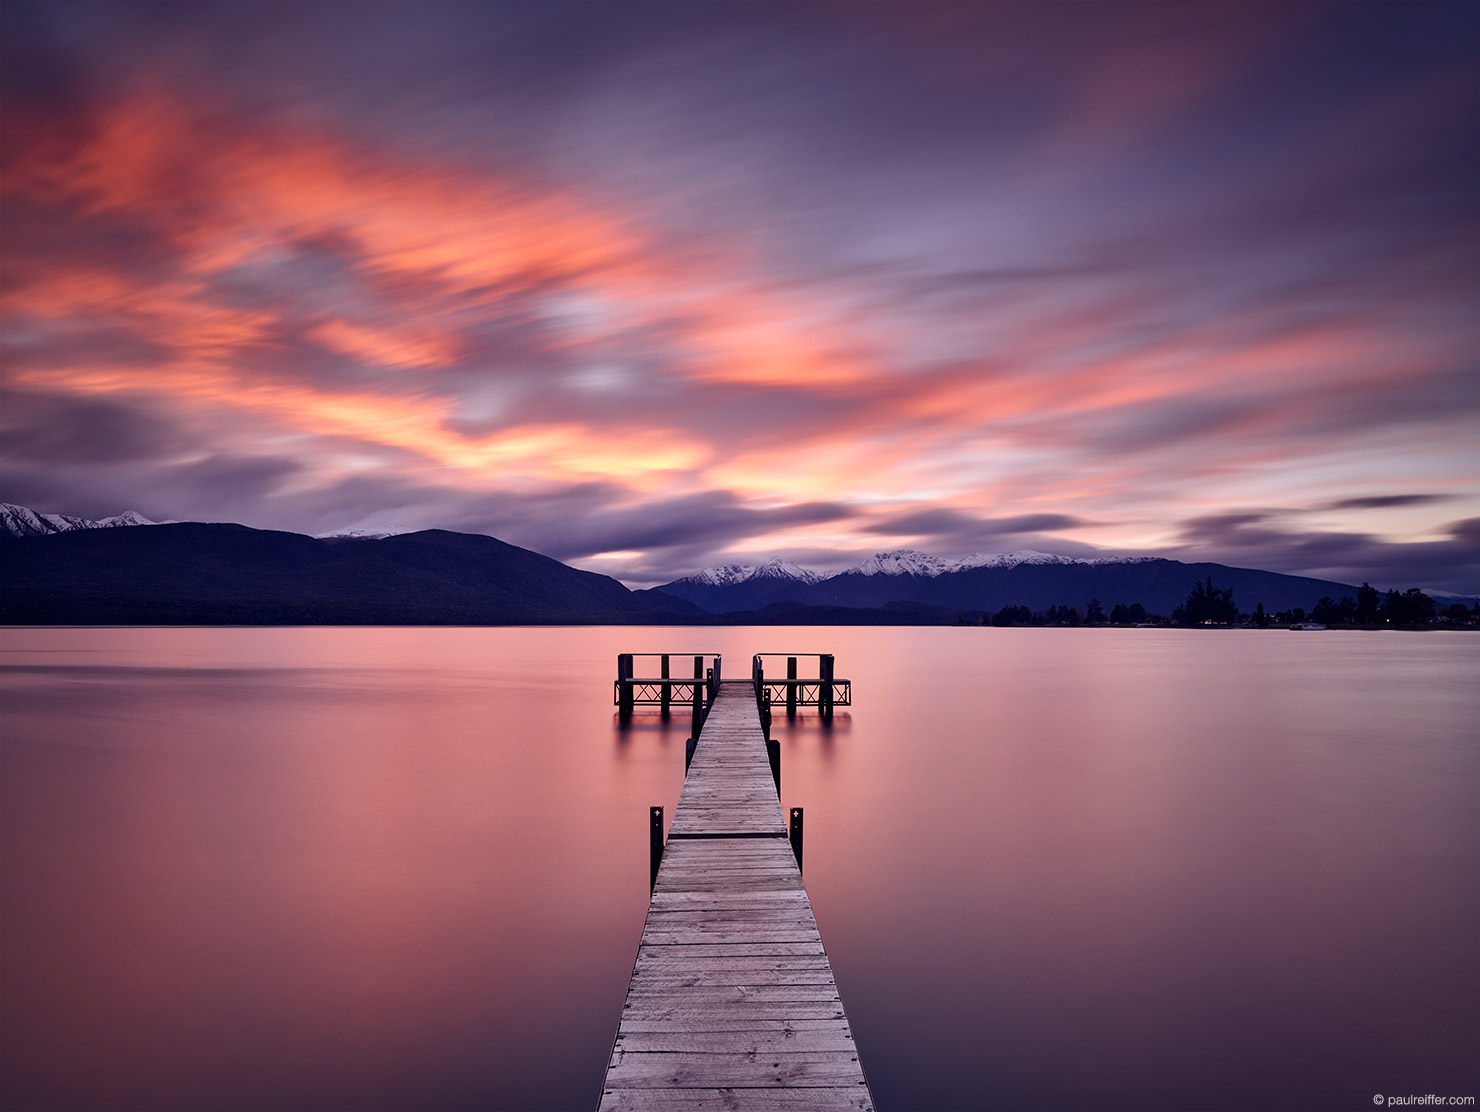 Restless Lake Te Anau TeAnau Jetty Sailing Rowing Club Long Exposure Fiordland National Park New Zealand Paul Reiffer Professional Photographer Sunset